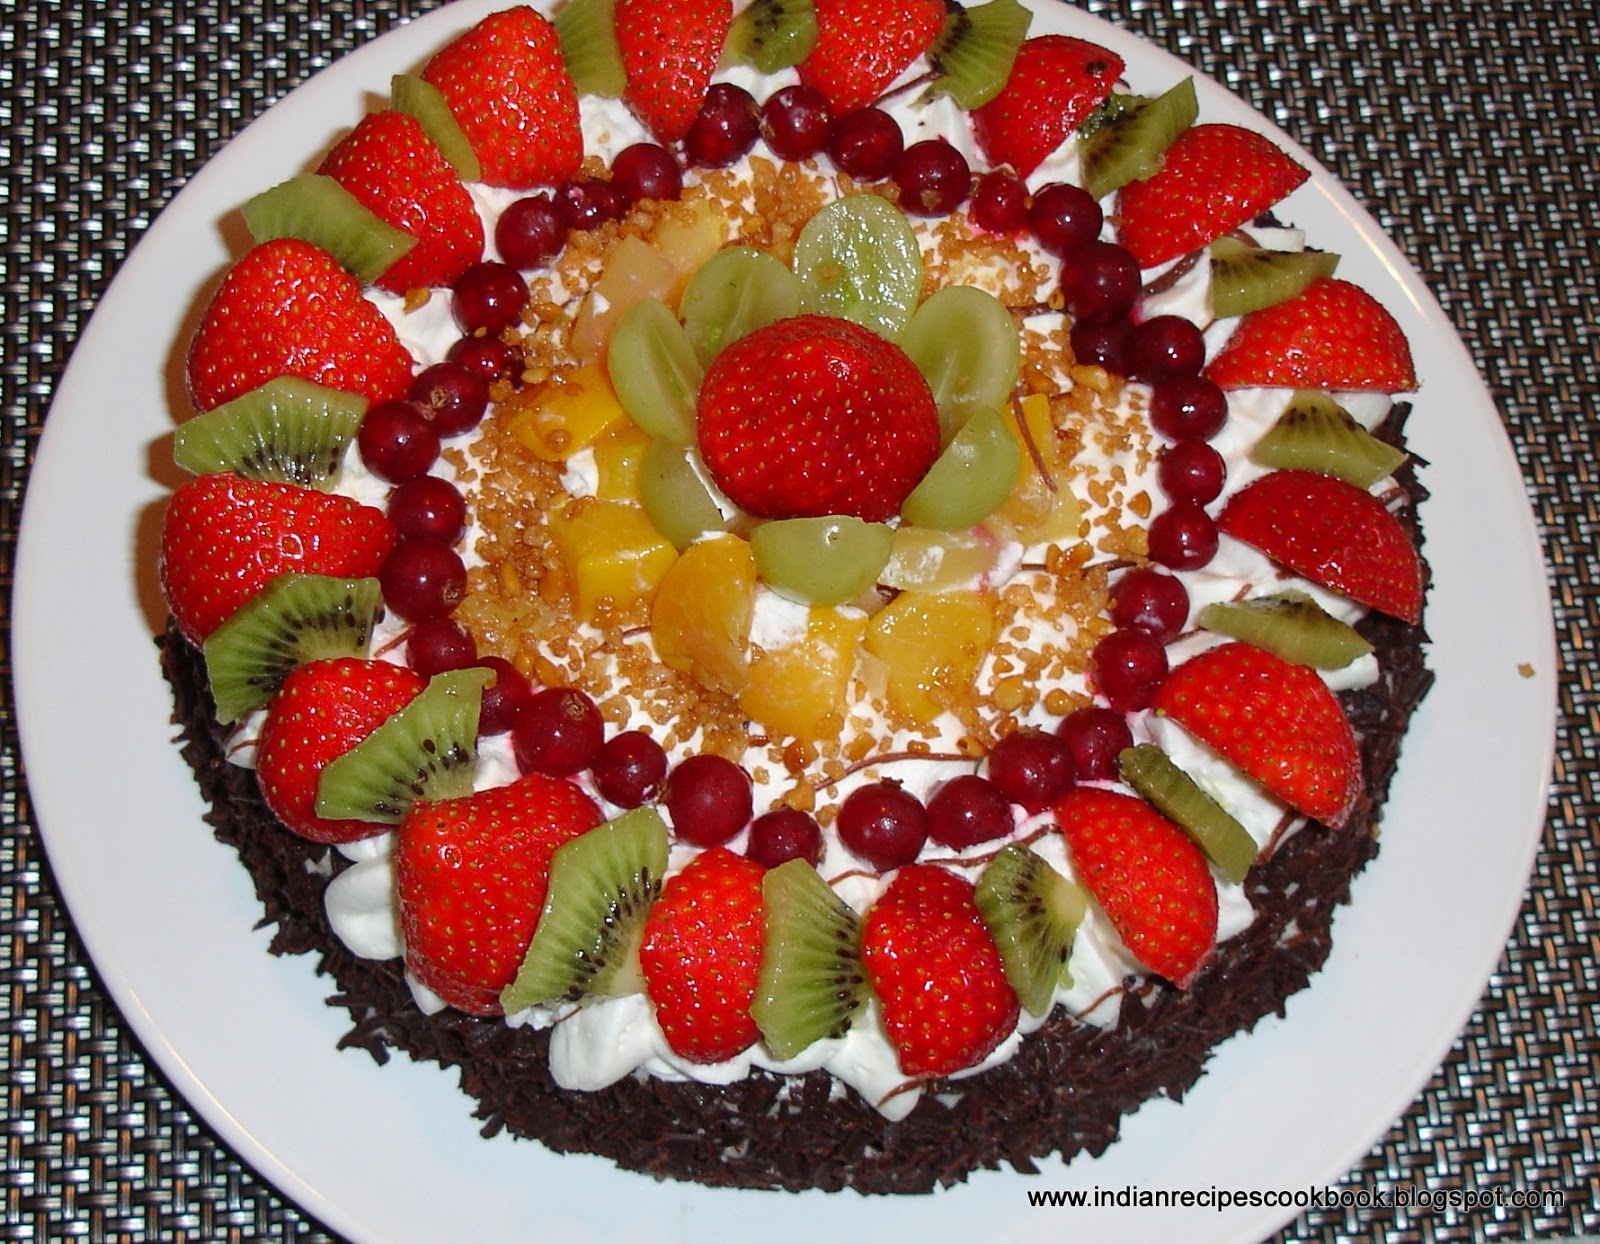 Decorating Ideas > Delicious Indian Recipes And More From Around The World  ~ 221321_Cake Decorating Ideas India